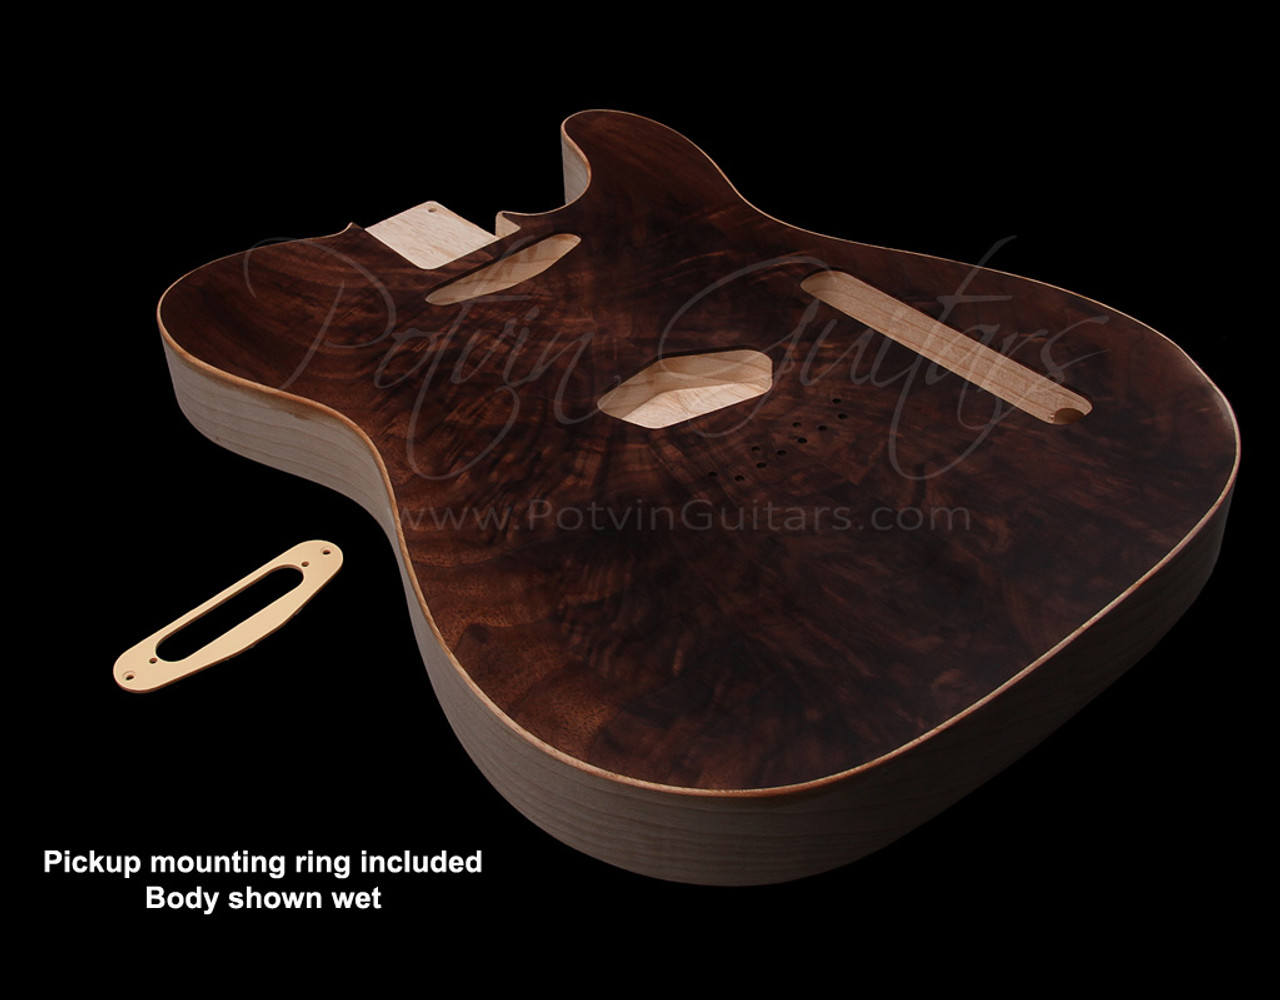 T-Style body #155 Figured walnut top inset on chambered swampash